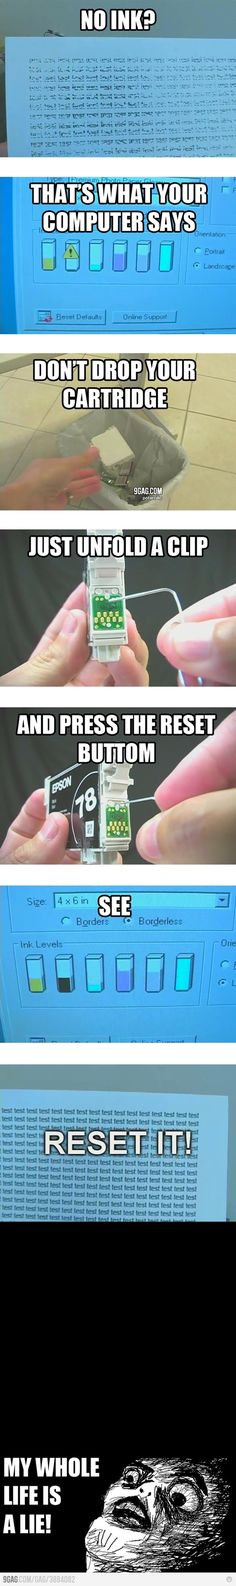 Reset ink cartridge